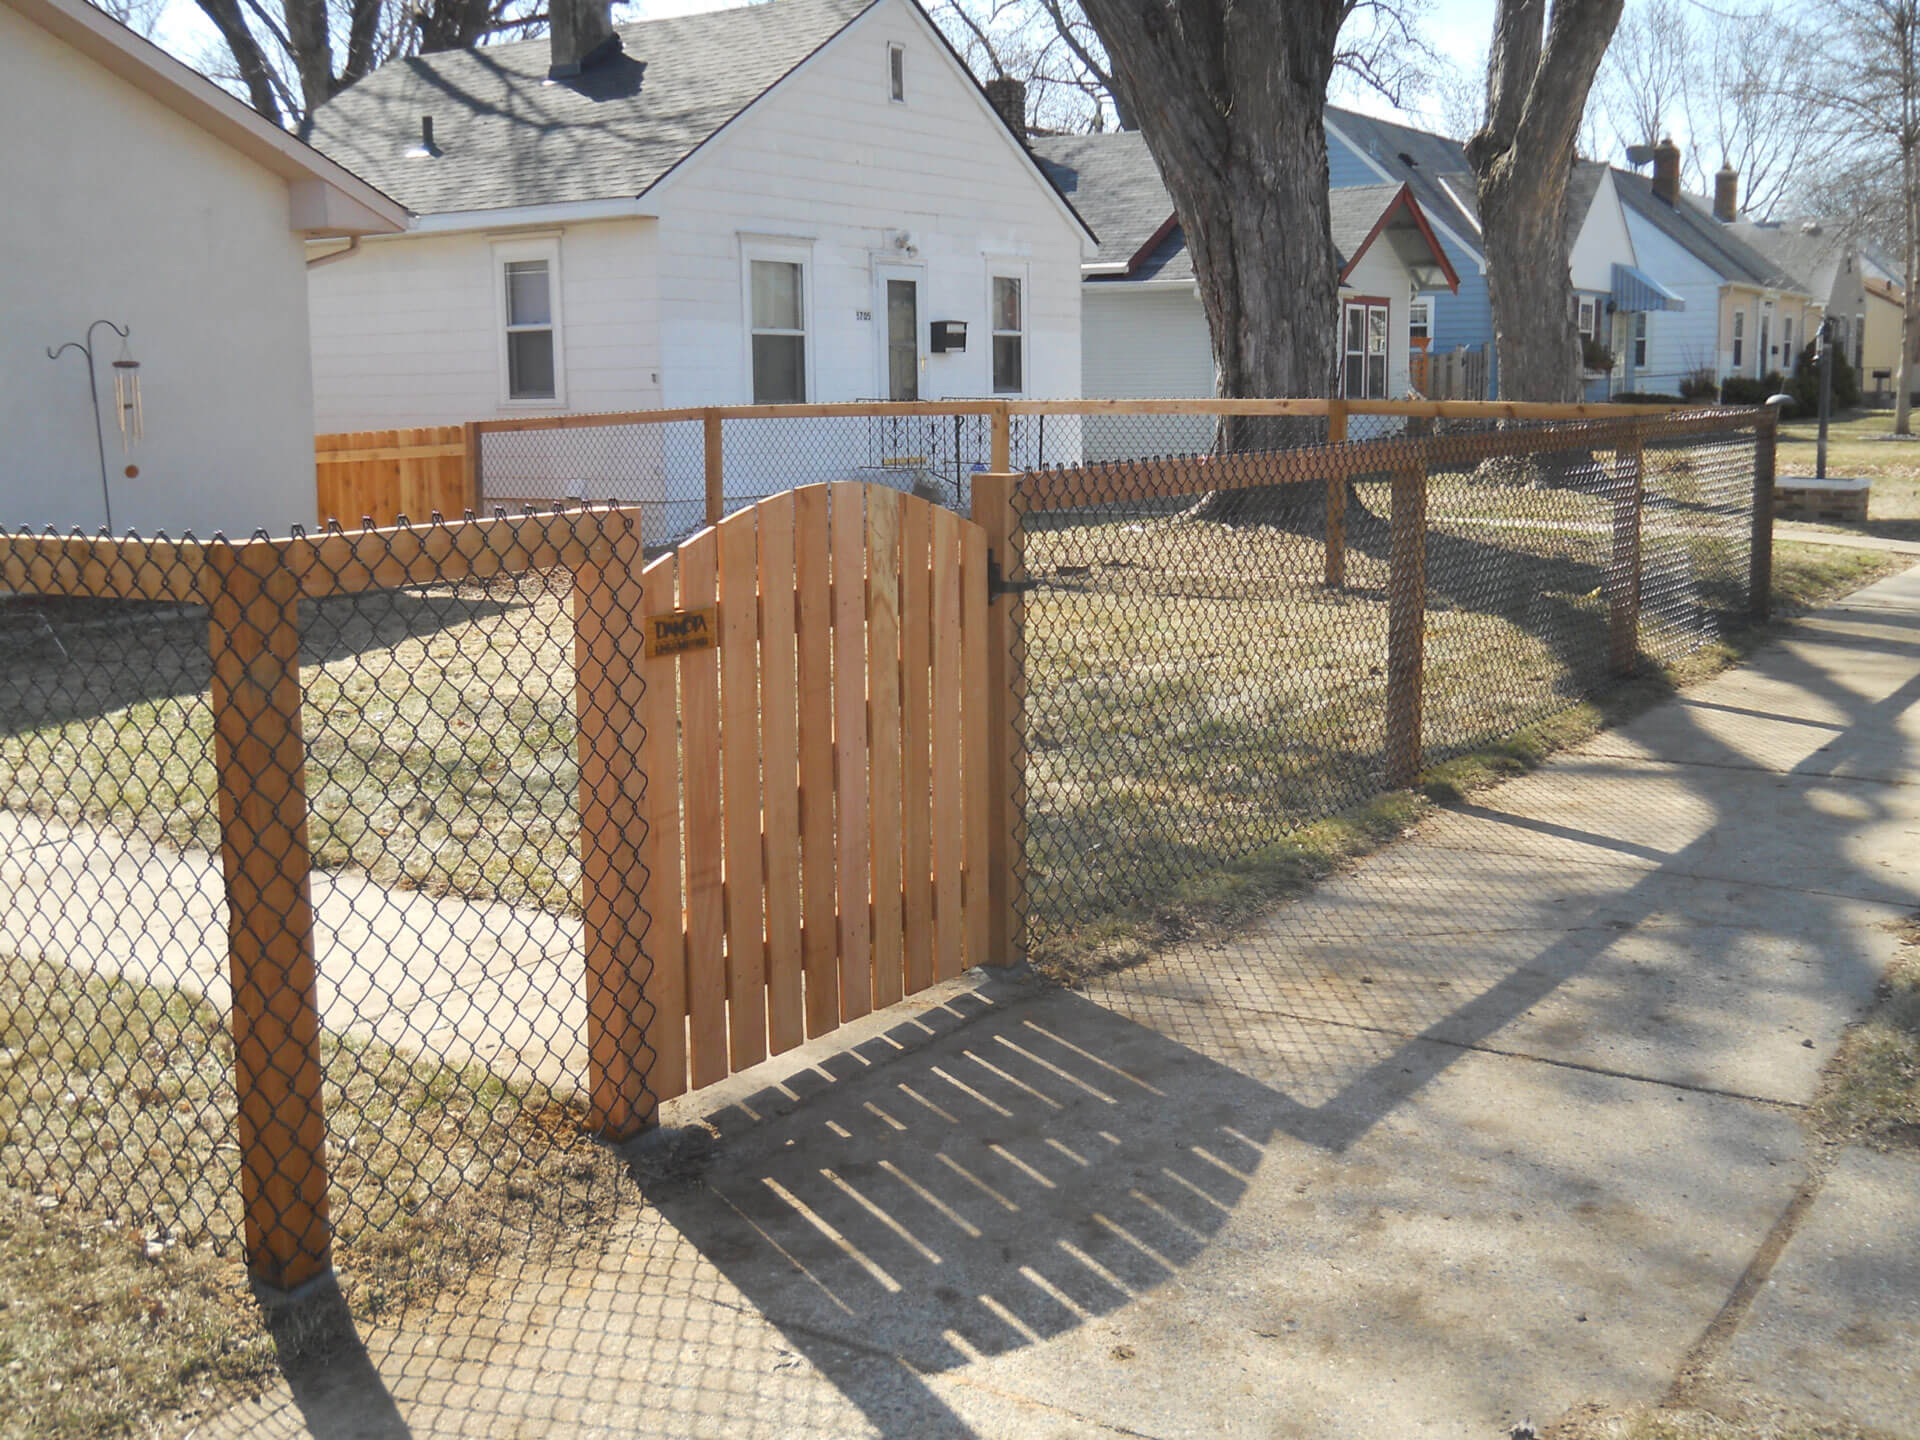 Chain Link Fence In St Paul Lakeville Twin Cities Woodbury within size 1920 X 1440